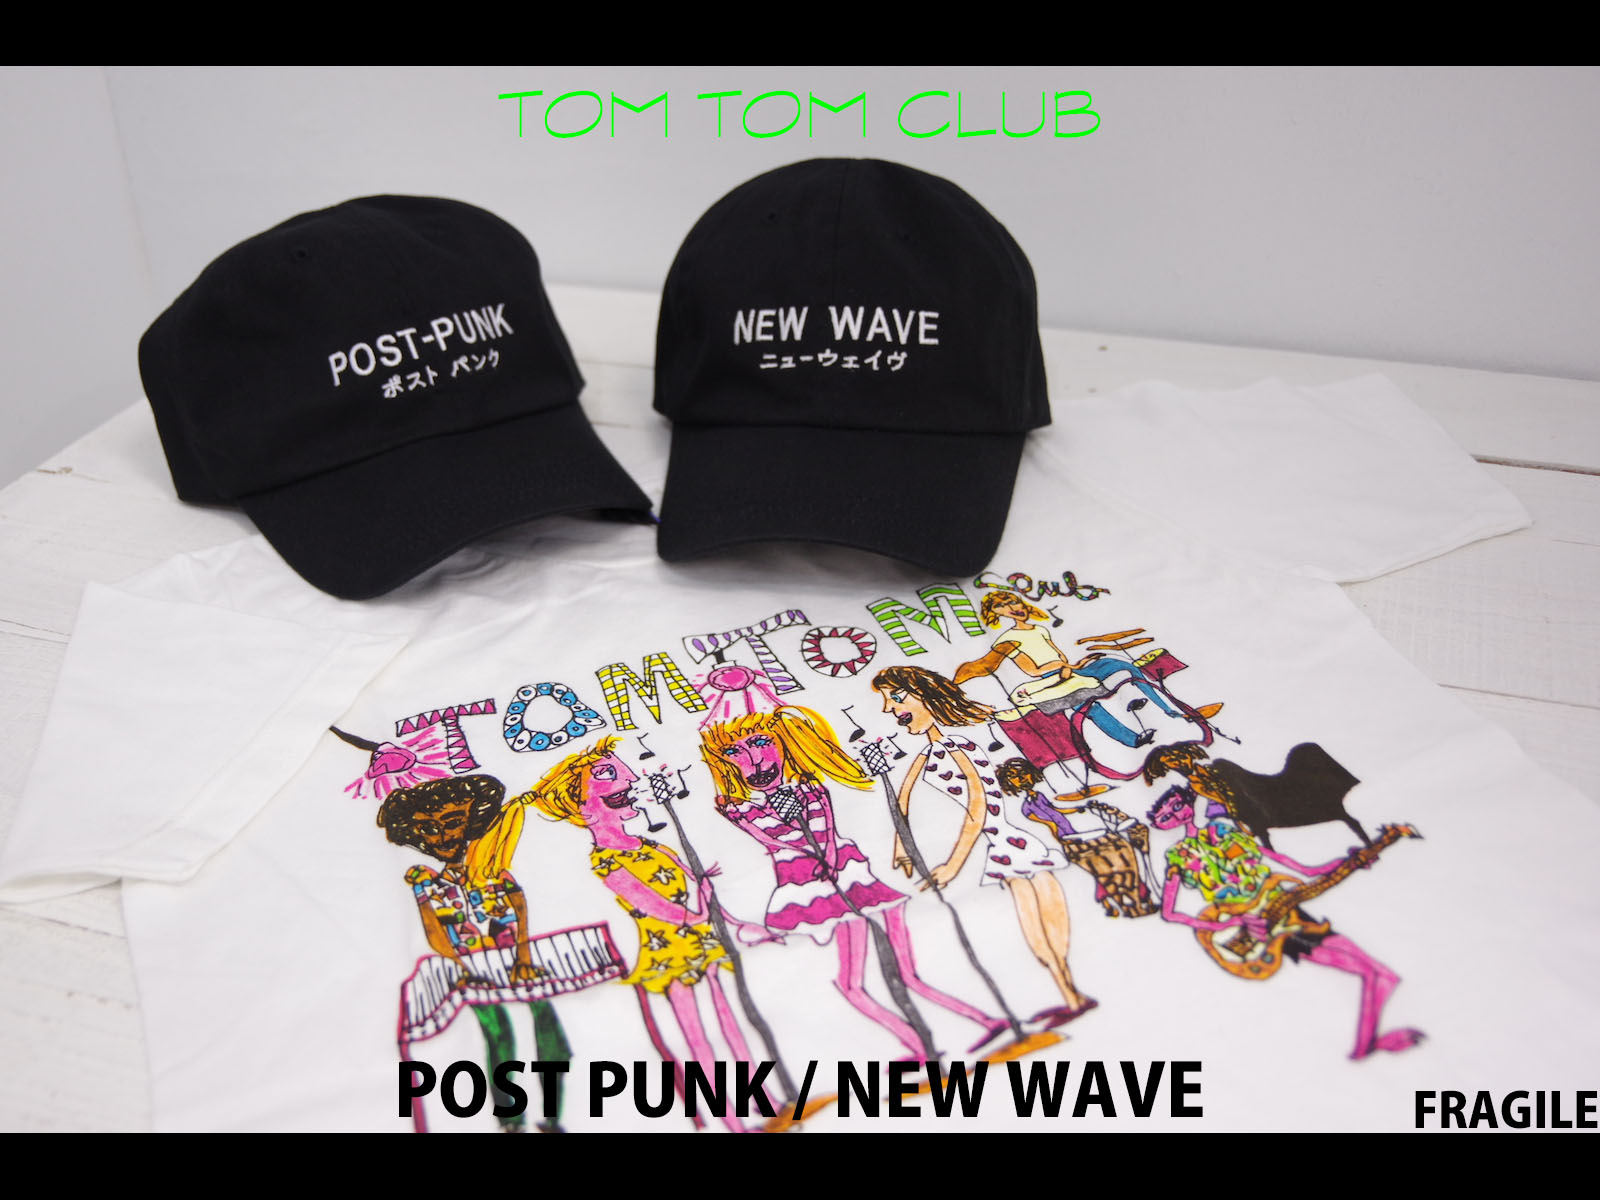 POST PUNK / NEW WAVE [TOM TOM CLUB]